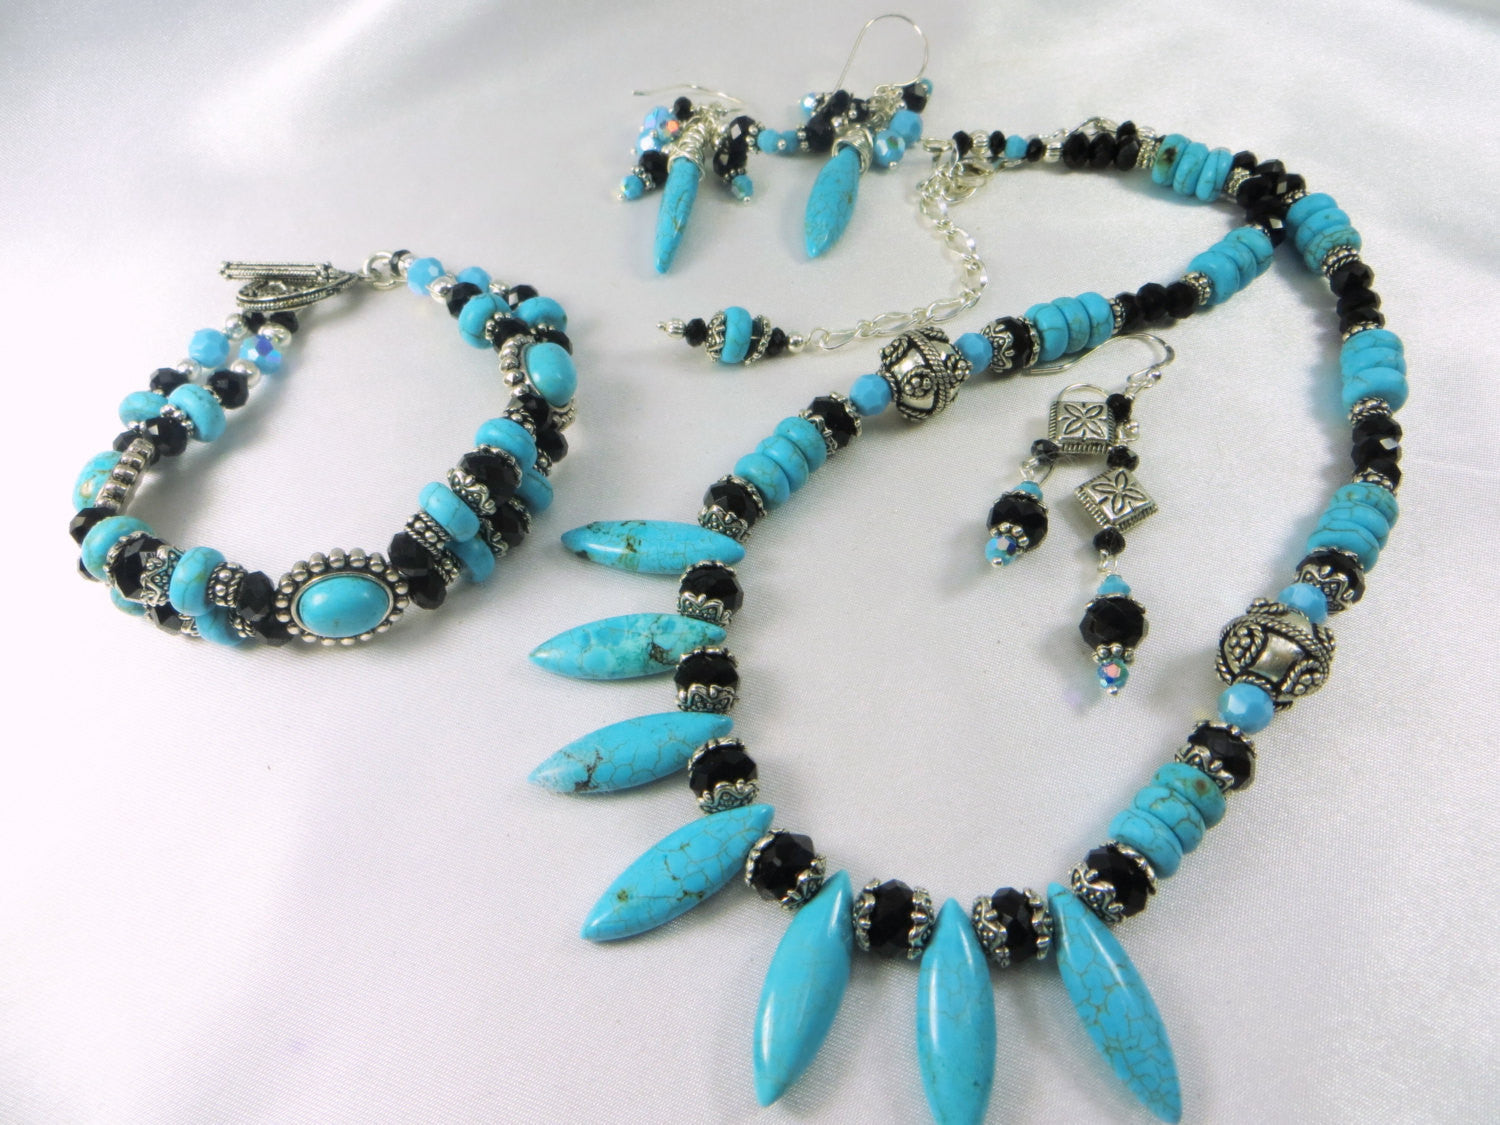 Blue Turquoise, Black and Silver Double Strand Bracelet - 7 inch medium size - can adjust size - Odyssey Creations